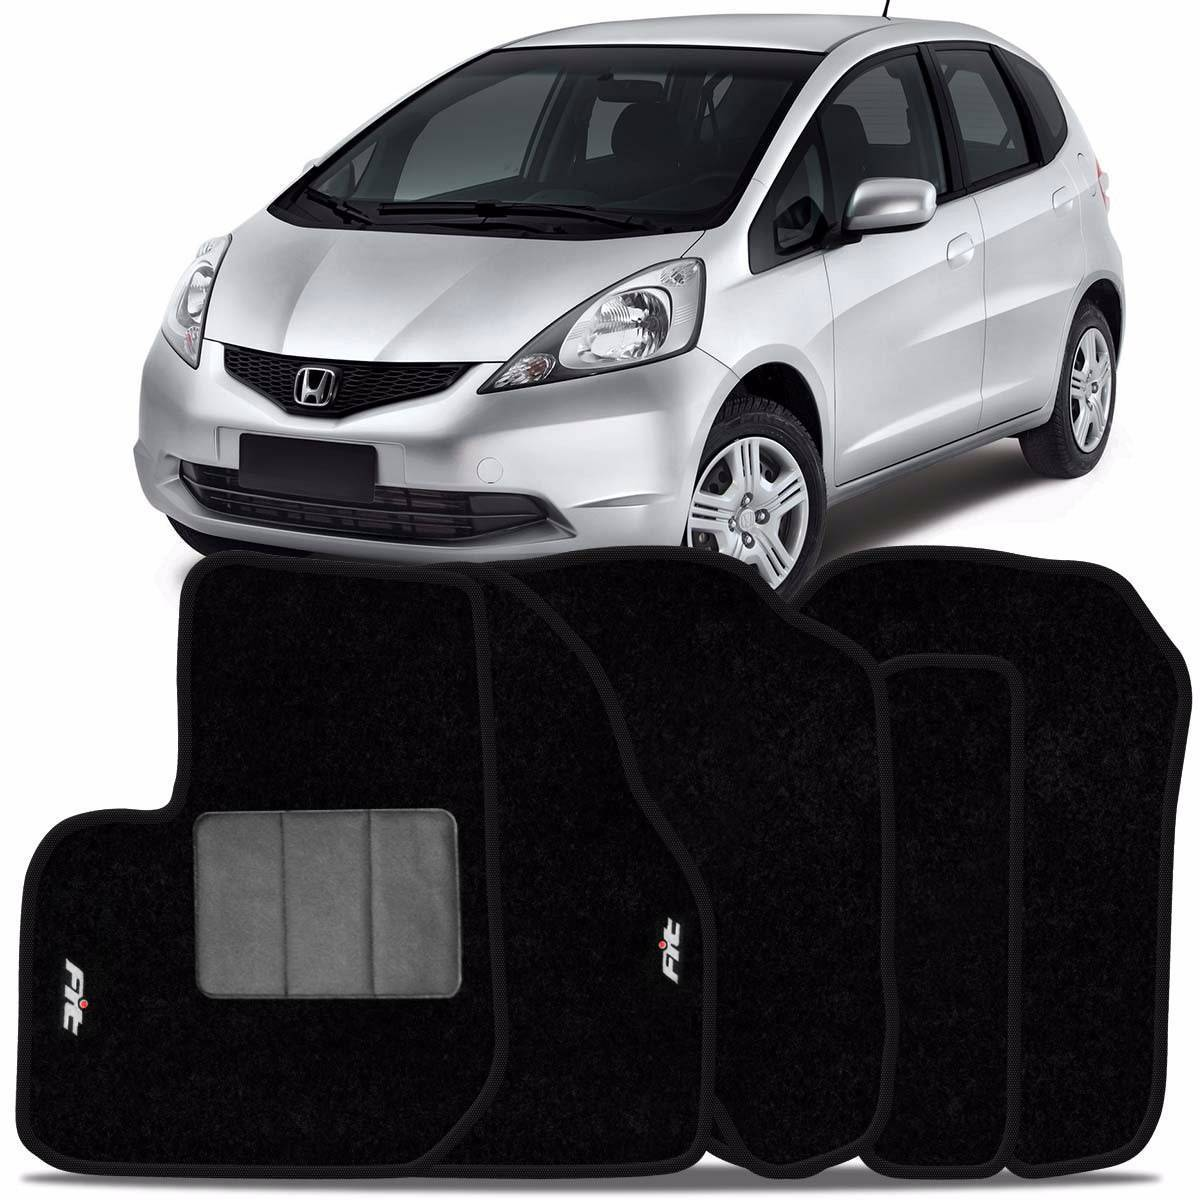 Tapete Automotivo Honda Fit - carpete base pinada